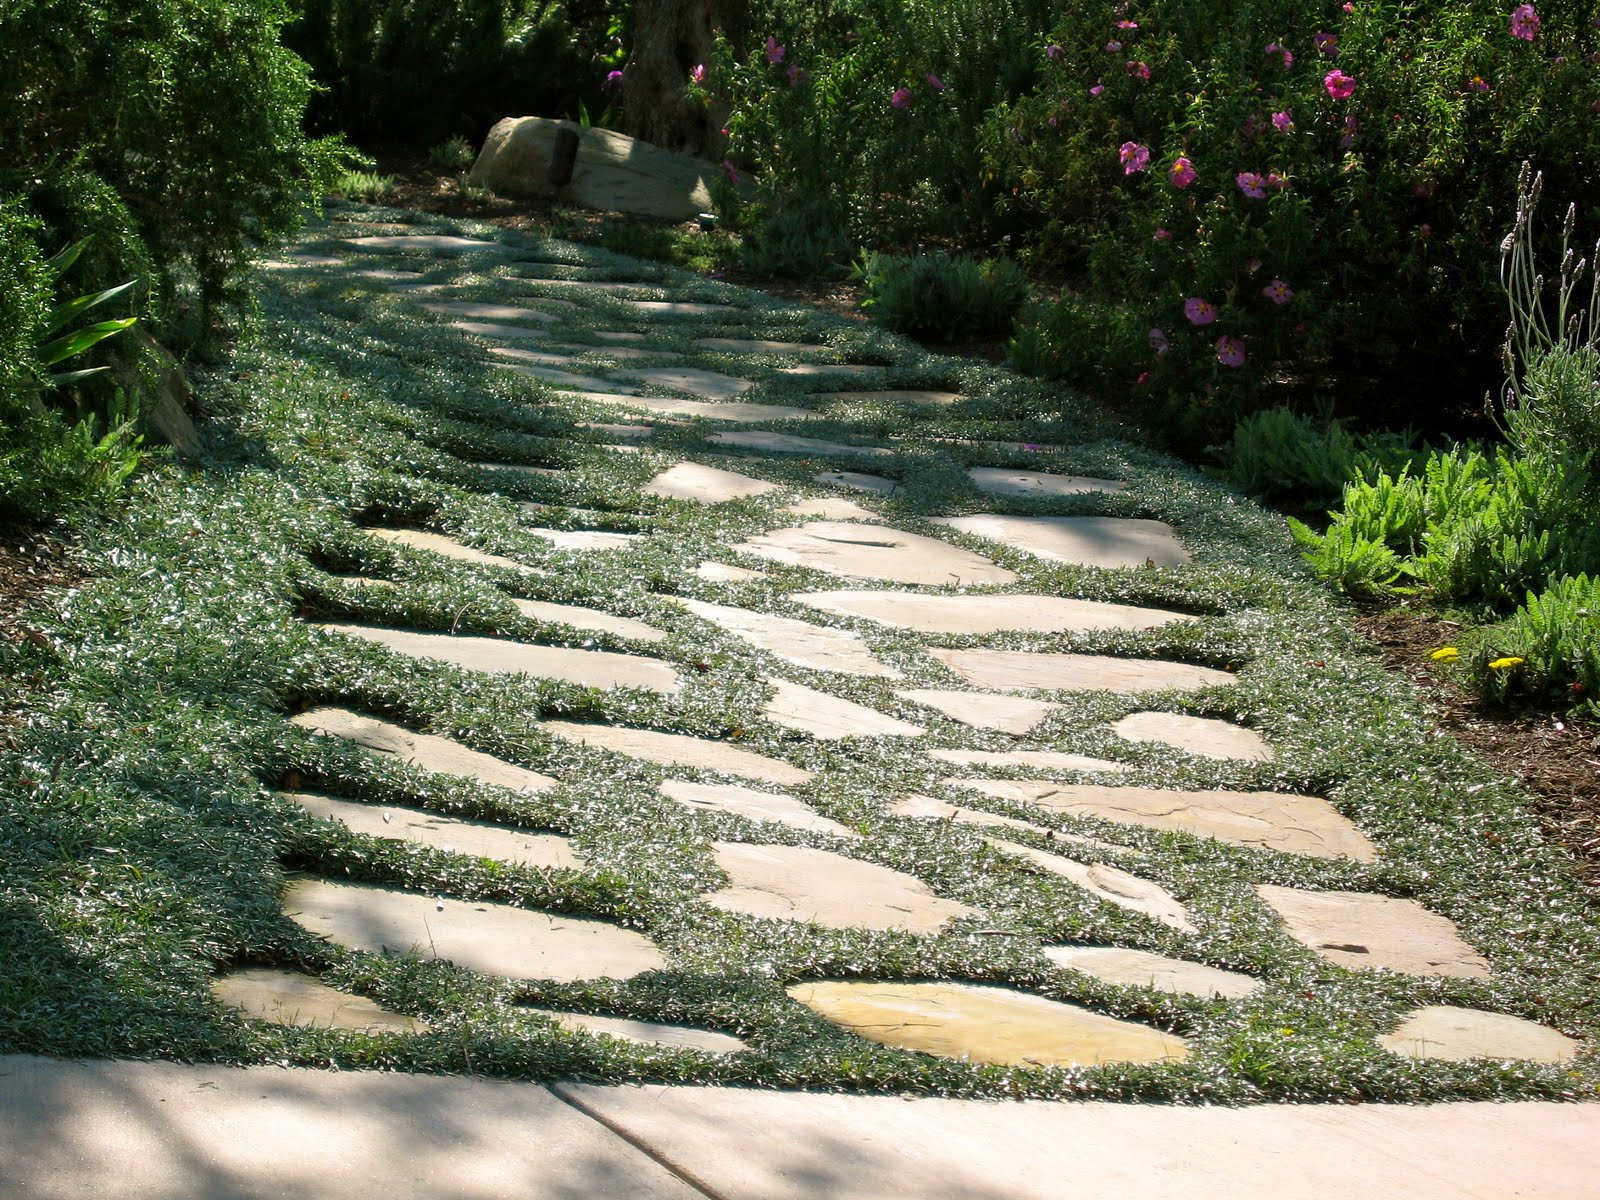 My california garden in zone 23 exquisite stone path for Stone path in grass